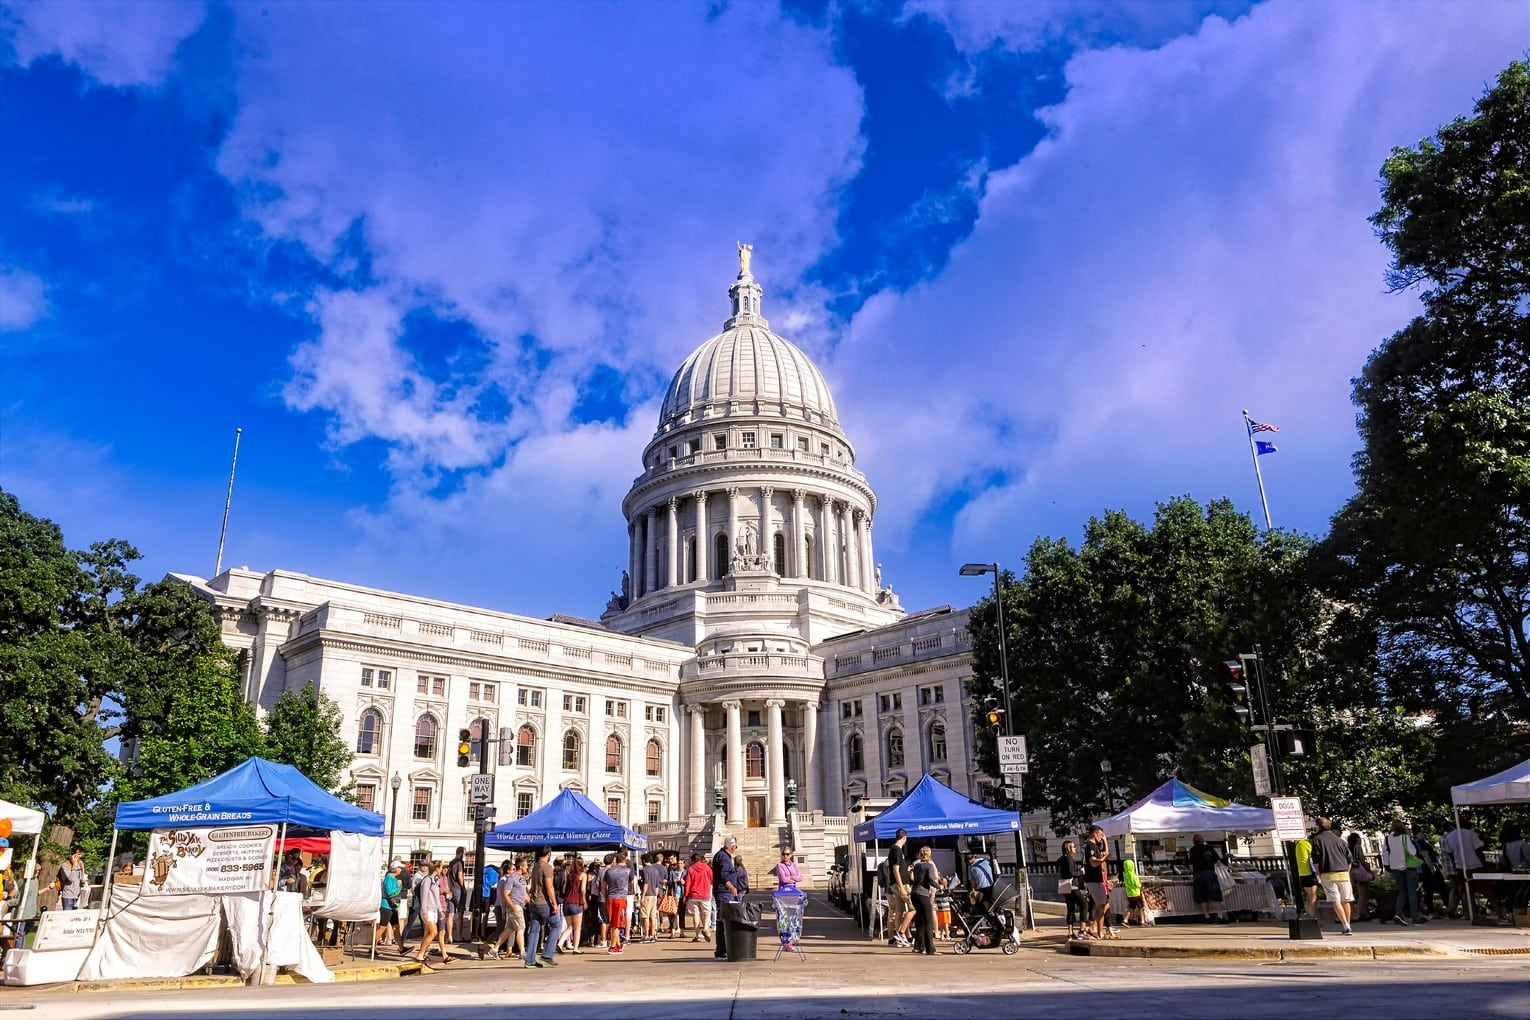 Laura-Lahti-Real-Estate-Downtown-Madison-Farmers-Market-1